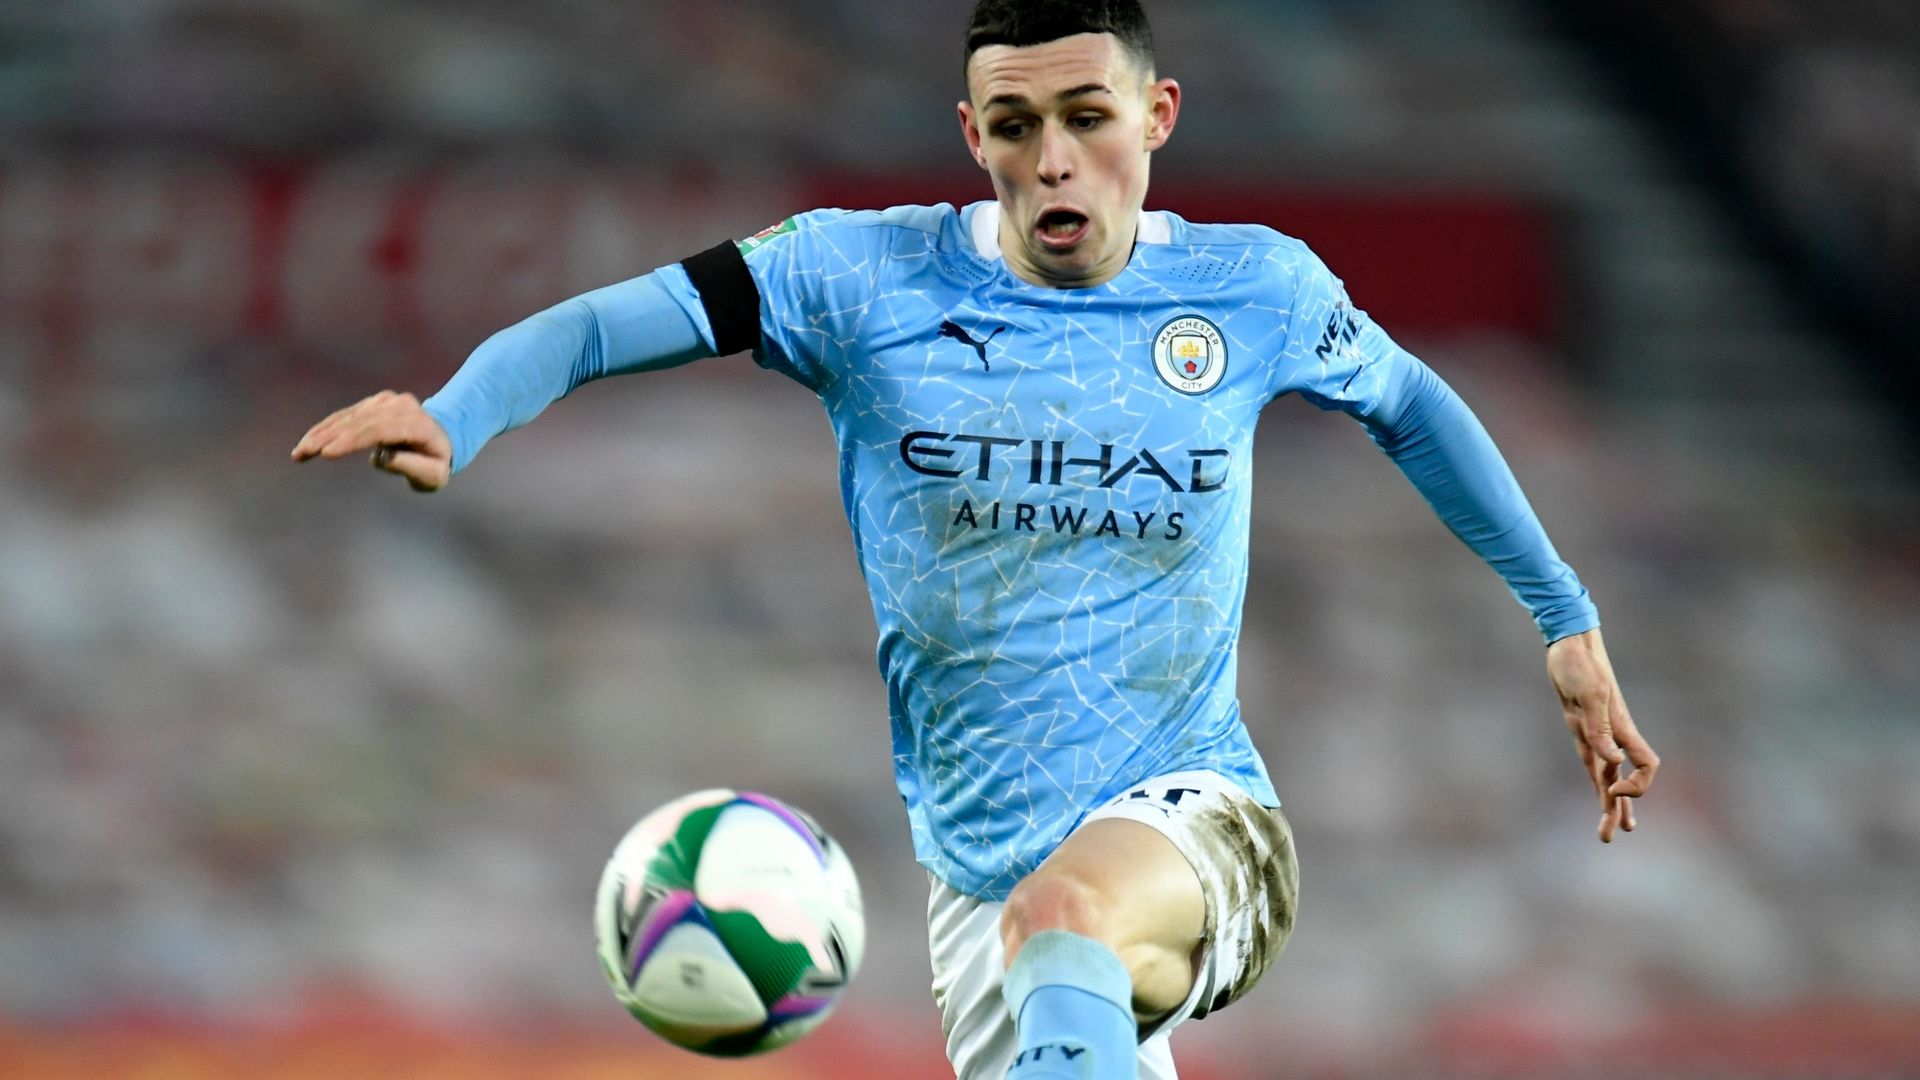 Foden: The boy who always has a ball at his feet